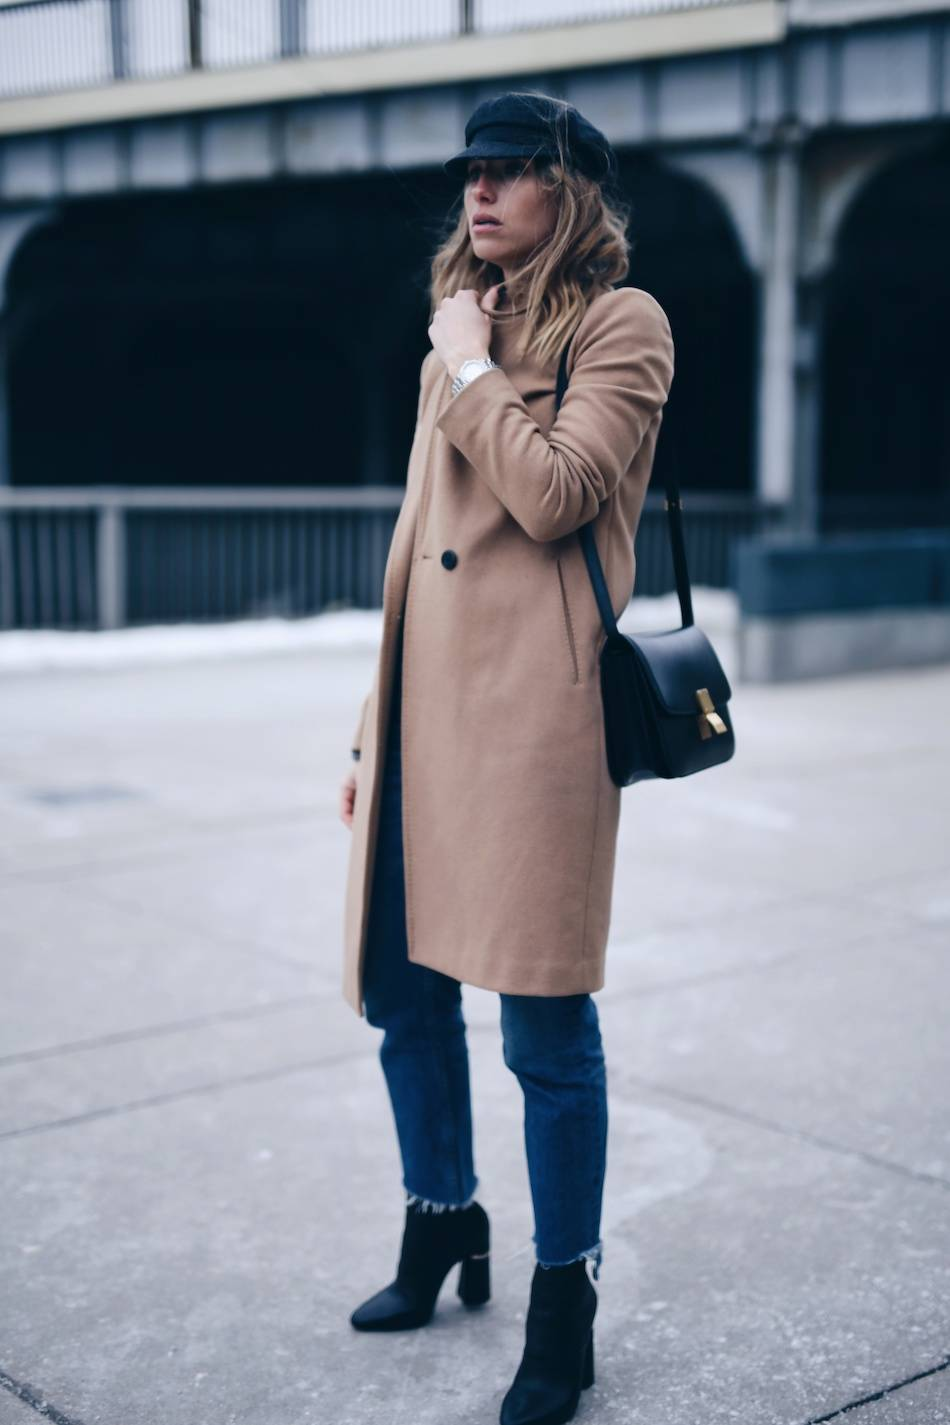 Style and beauty blogger Jill Lansky of The August Diaries Isabel marant Eva newsboy cap, camel coat, jeans, French style, how to dress like a Parisian, tag heuer watch